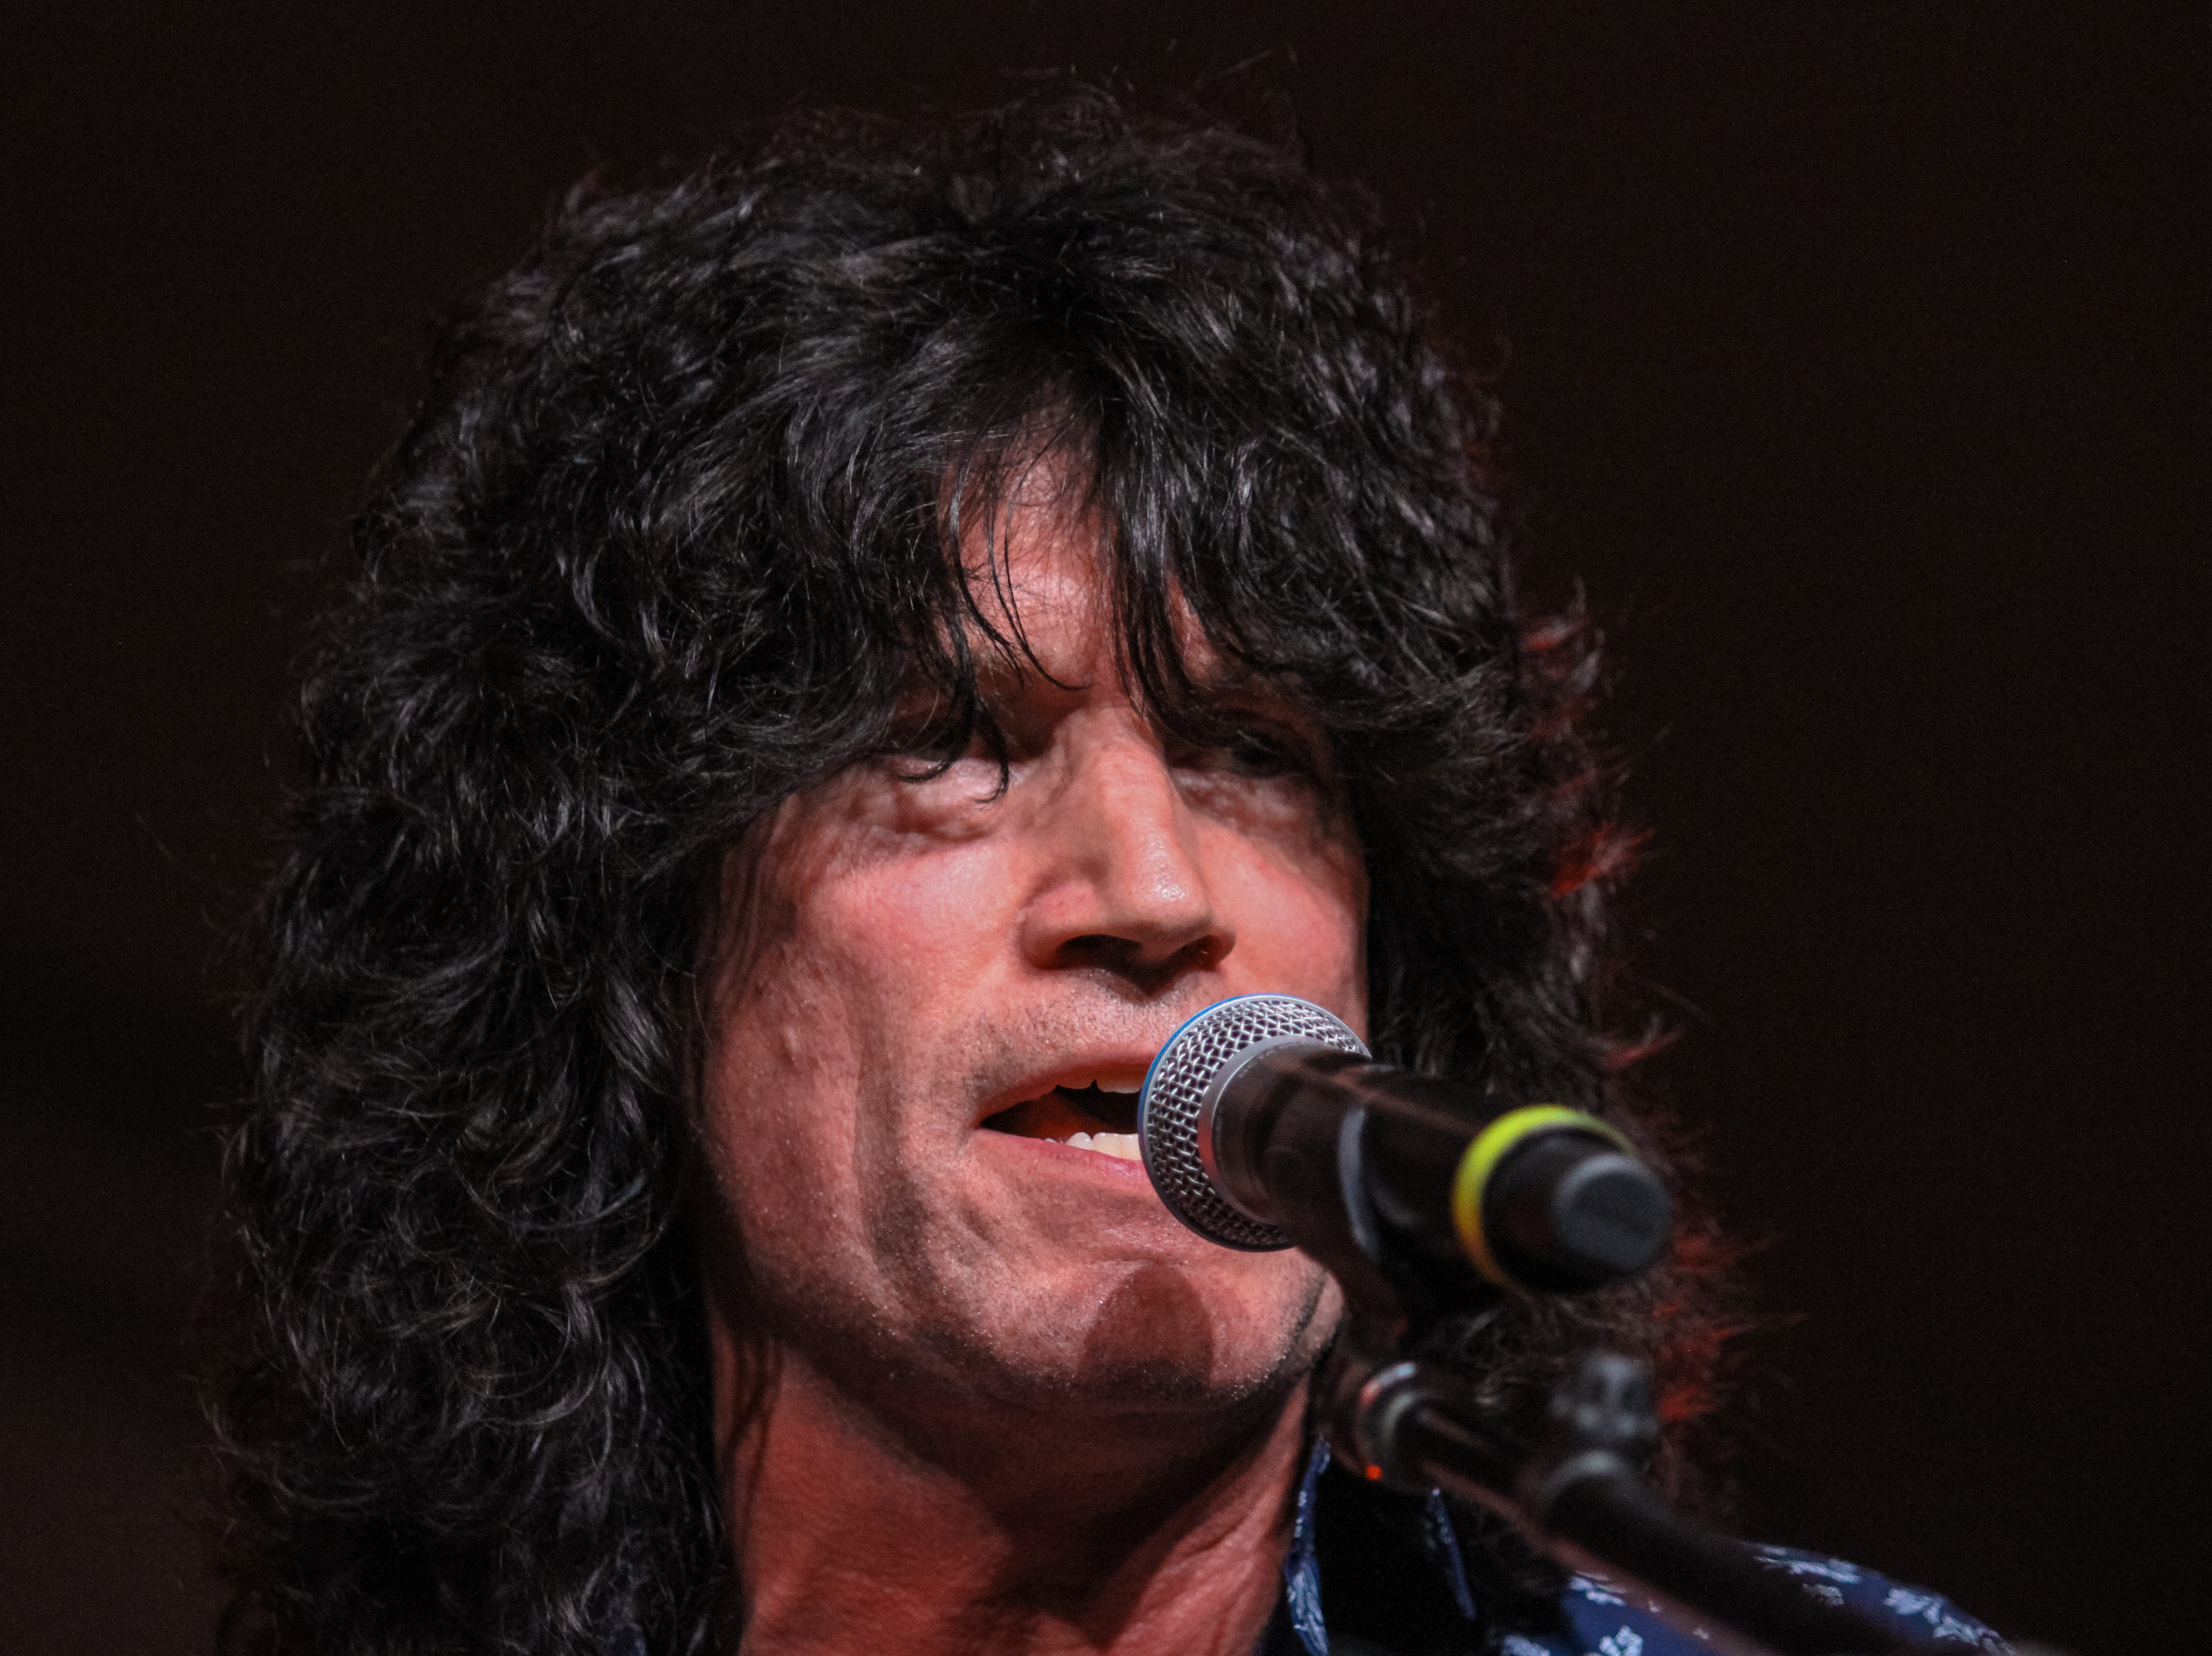 Tommy Thayer of Kiss preforms at Alice Cooper's Rock & Roll Fundraising Bash at the Las Sendas Golf Club in Mesa on April 27, 2019.